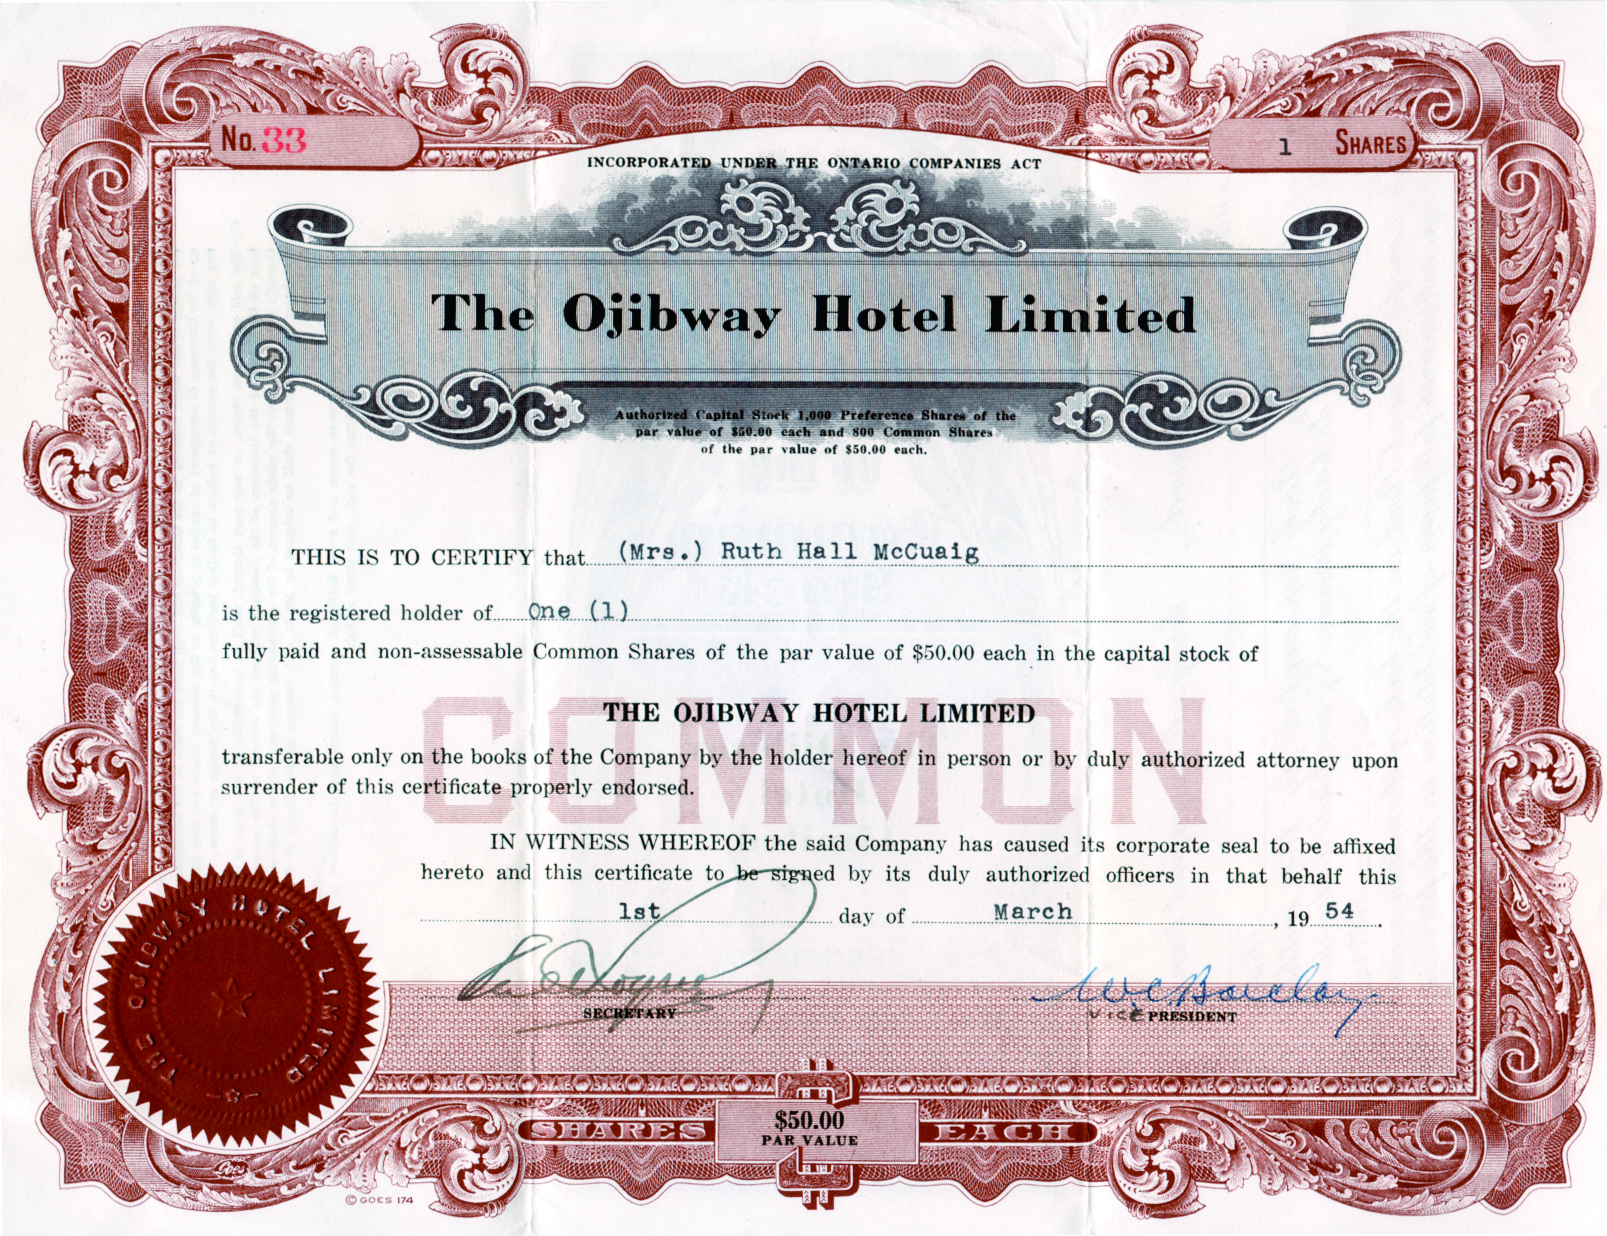 Throughout the 1940s and 1950s, shares were issued to finance the ongoing operations of the hotel. This had more to do with fundraising than with investment, for there were certainly more profitable ventures than a big old resort. But the islanders wanted the Ojibway to continue to be run as always. None of the investors expected to makeany money. And, as amatter of fact, they didn't.